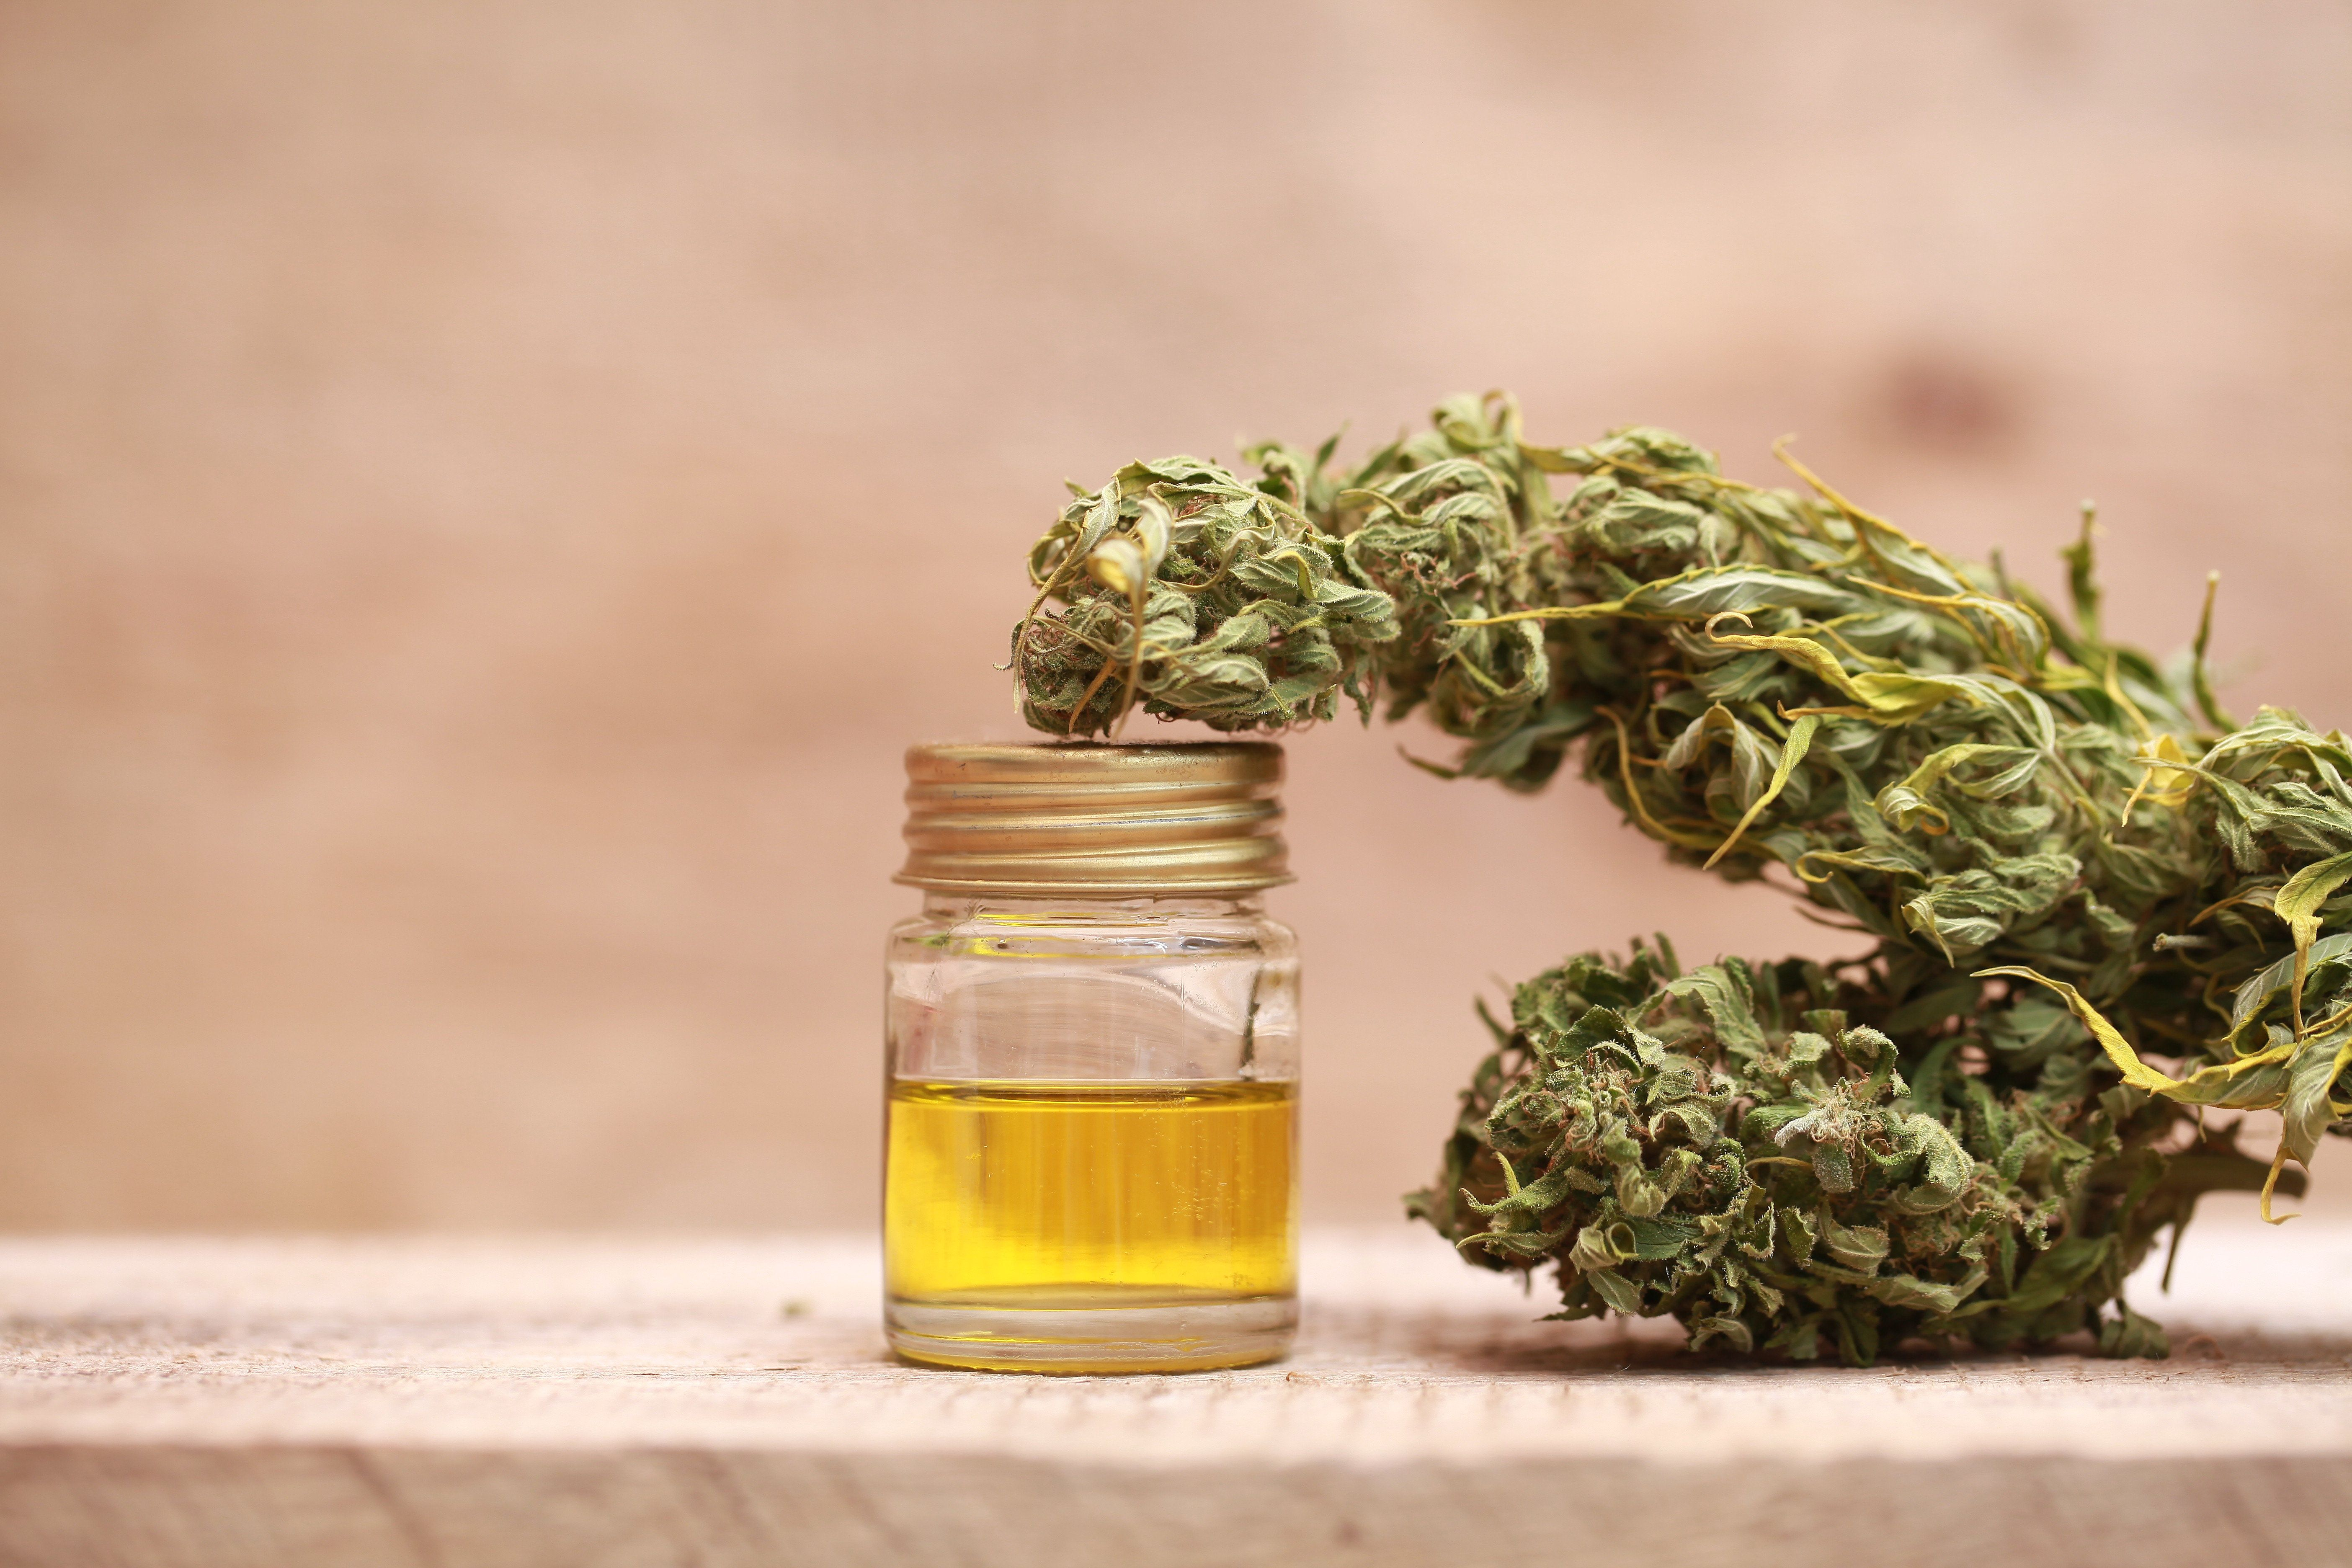 Medicinal Cannabis Oil Prescriptions Will Be Available From 1st